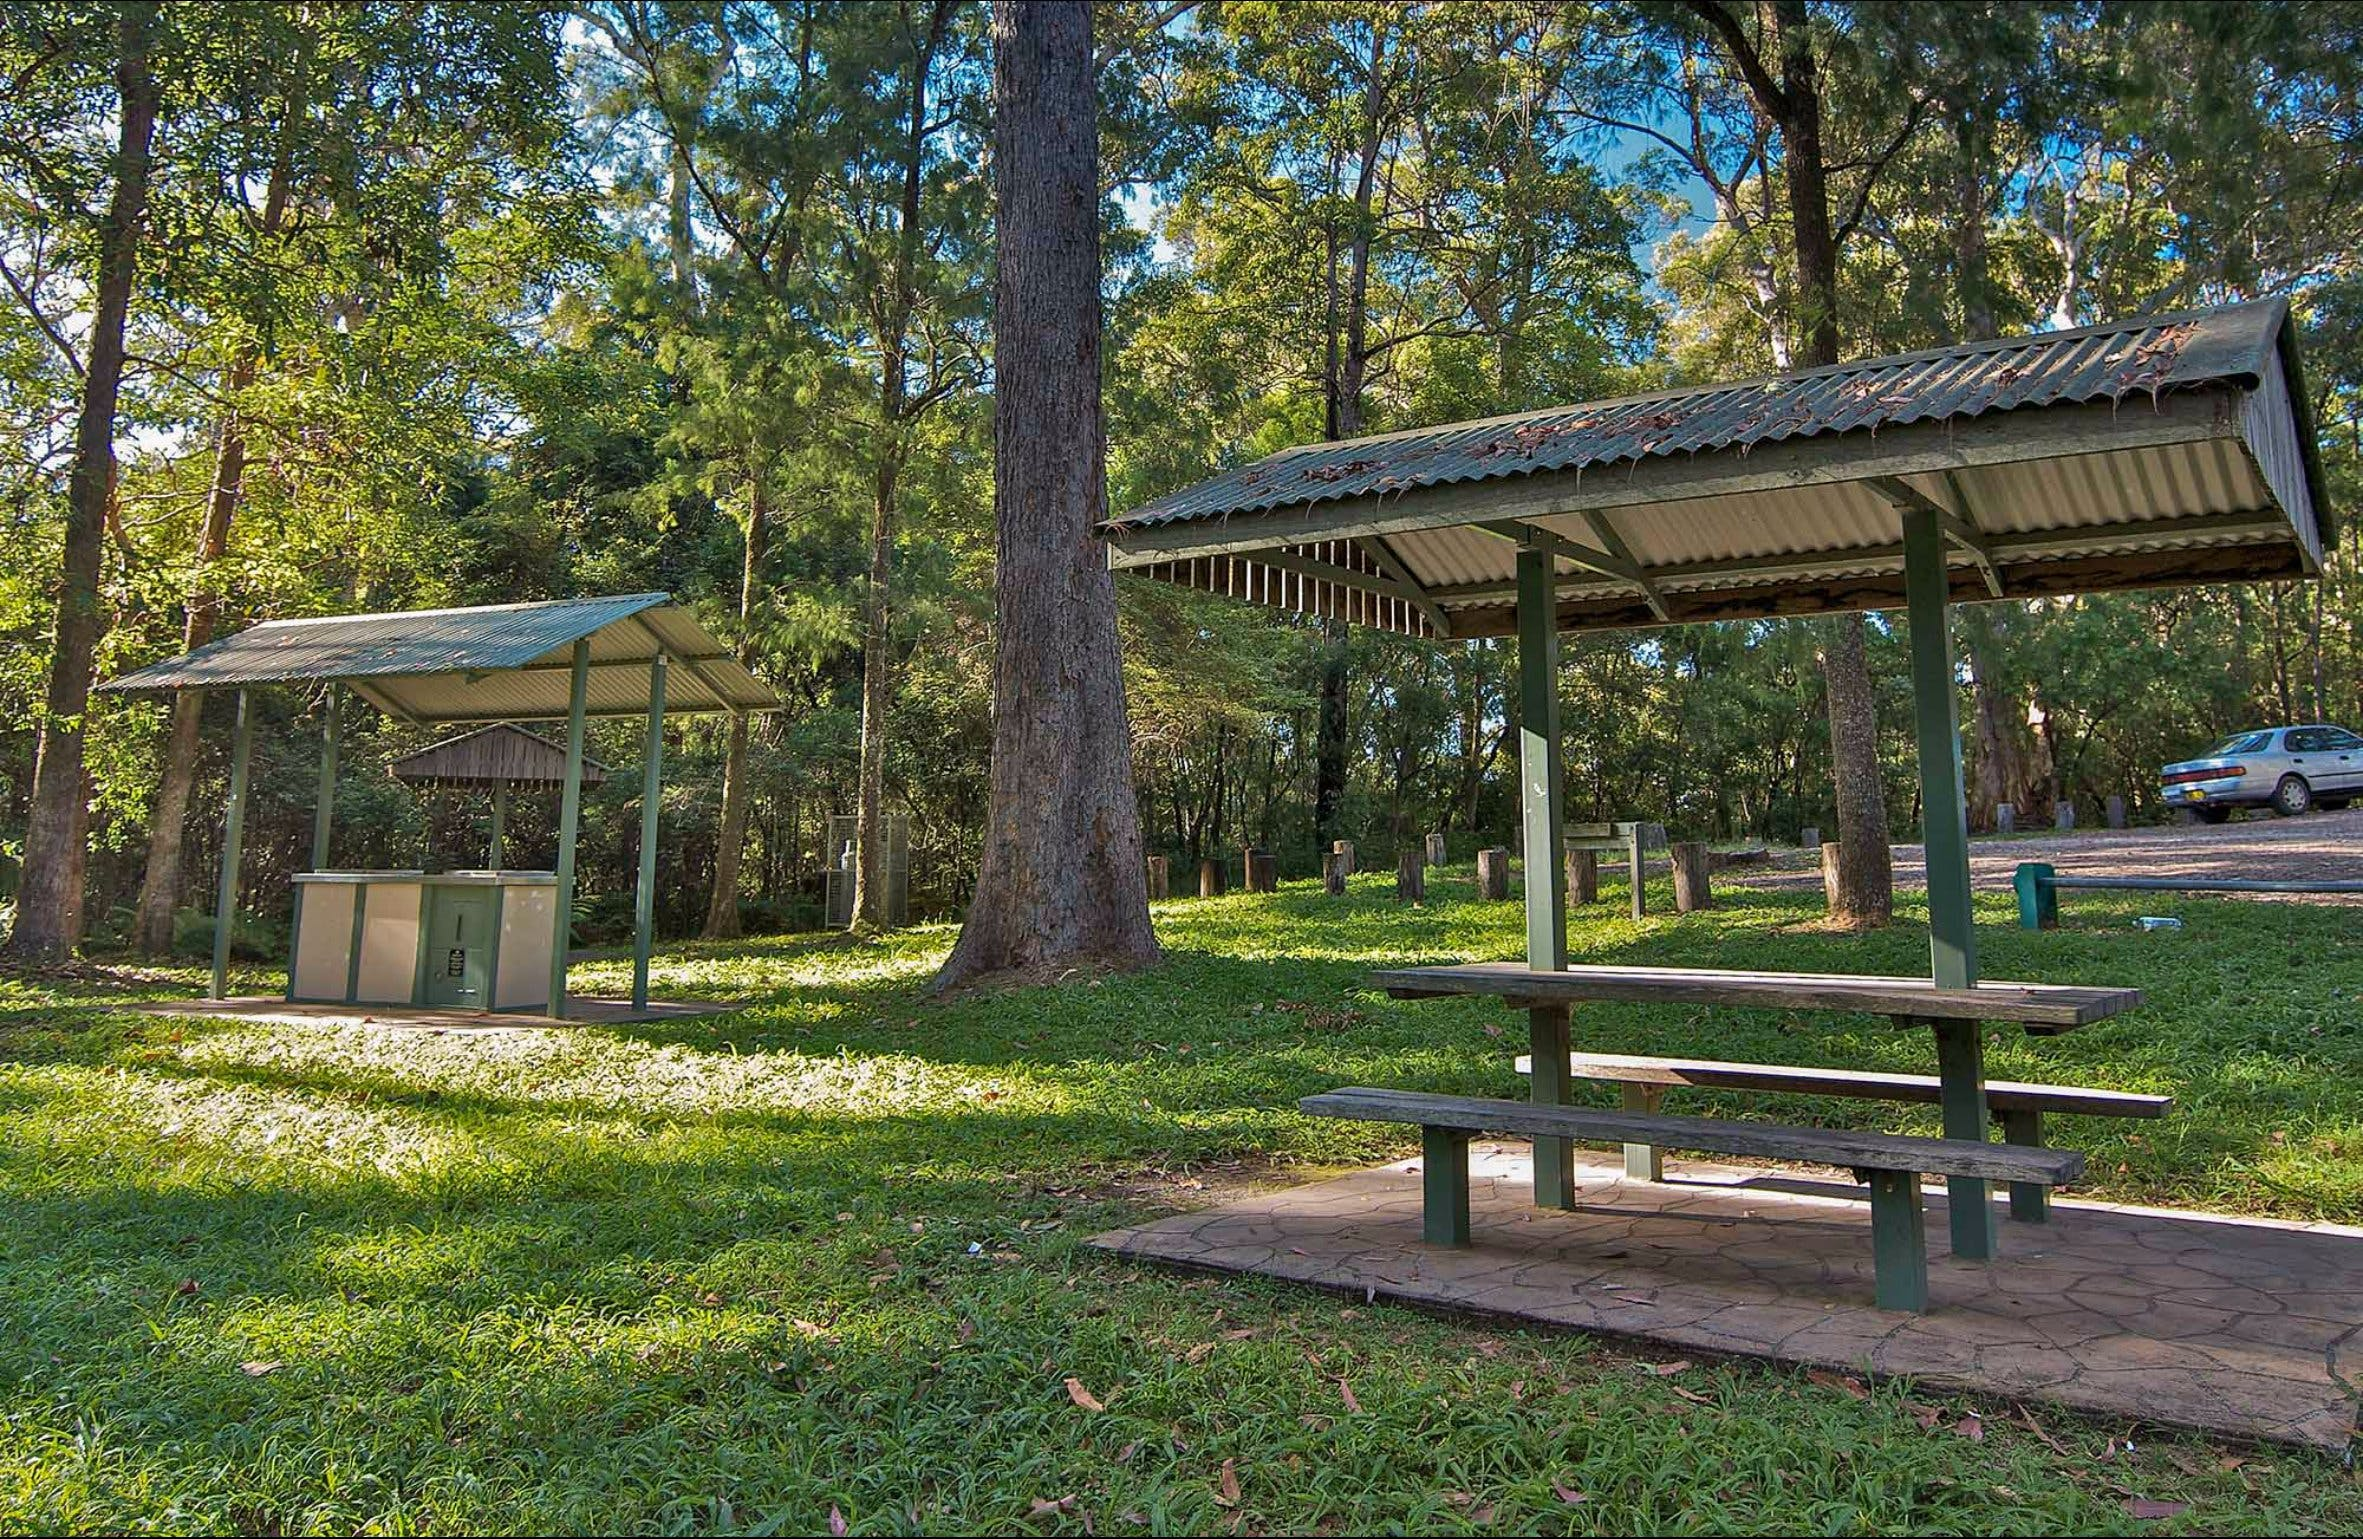 Minyon Grass Picnic Area